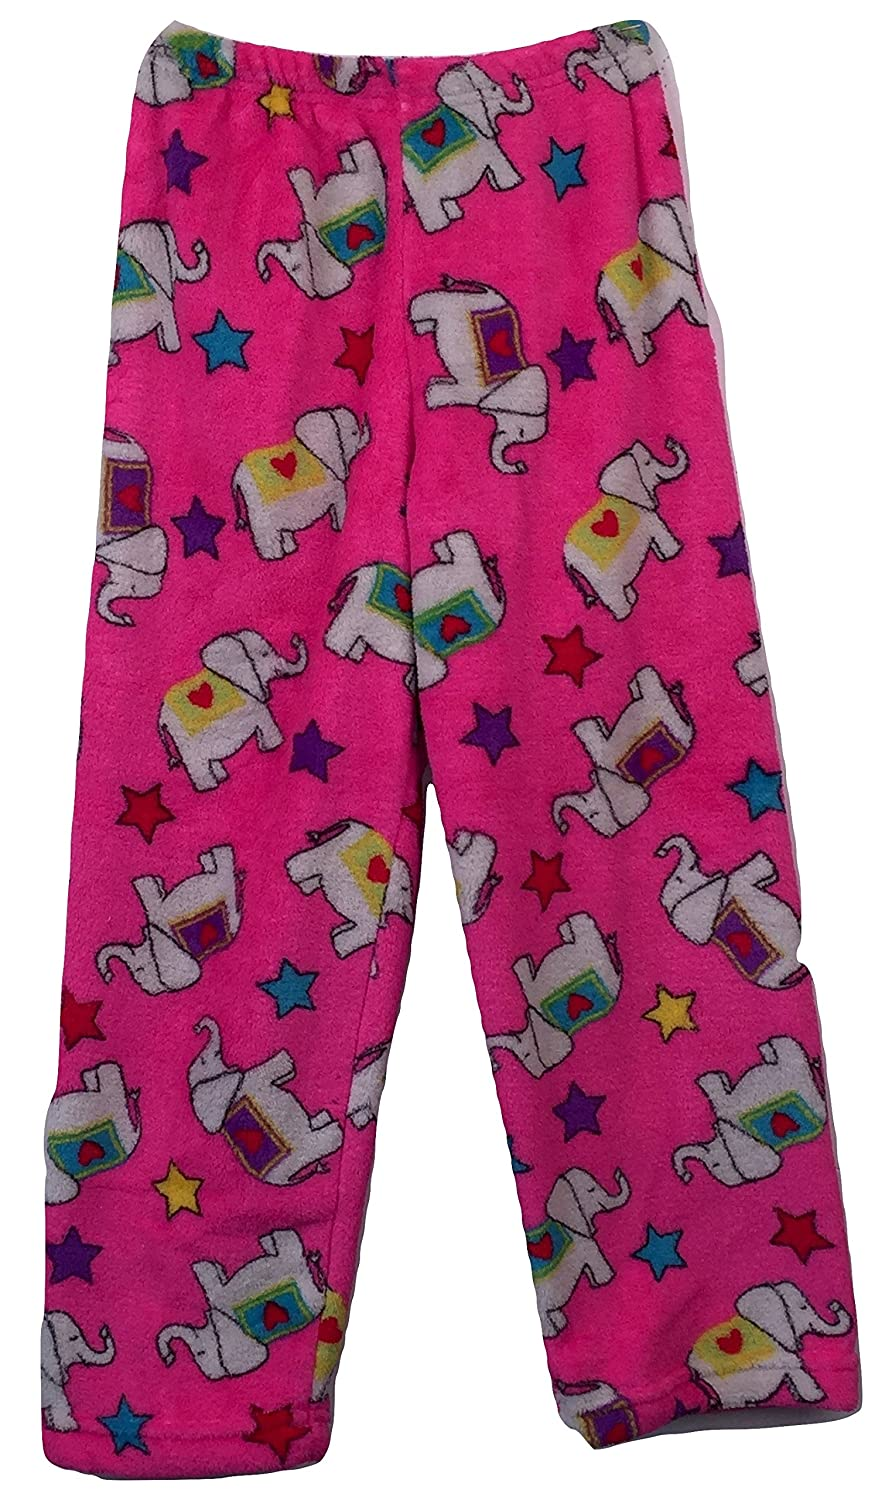 Made with Love and Kisses Boys & Girls Super Soft, Super Cozy Novelty Print Plush Pants